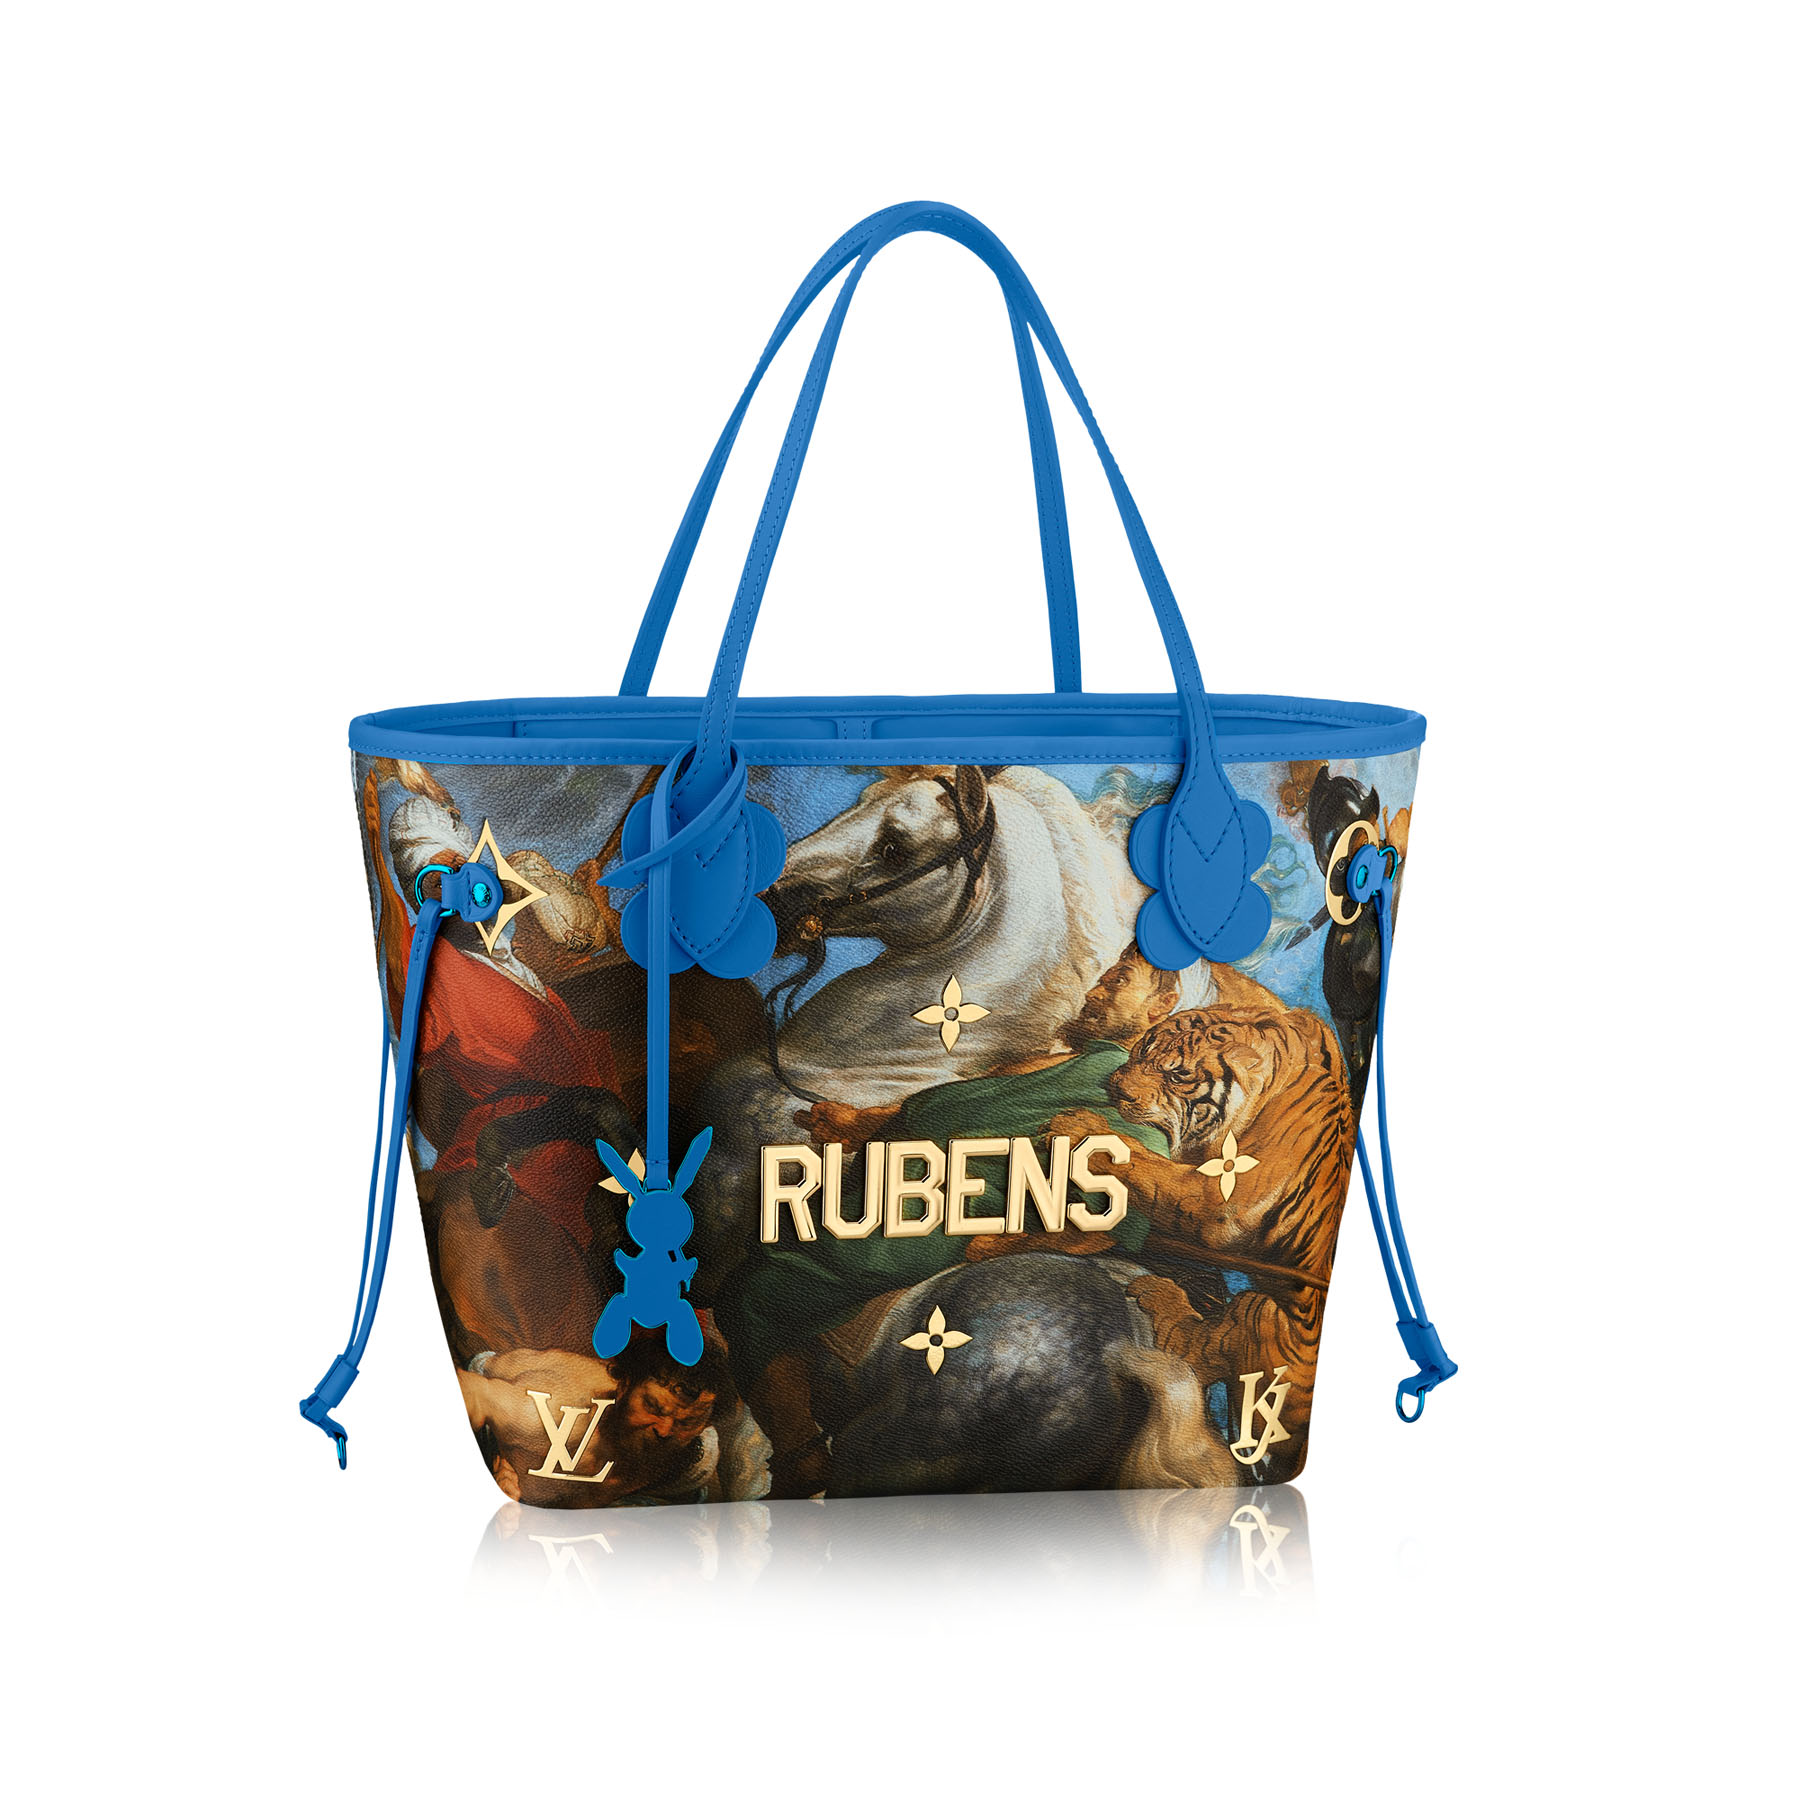 Louis-Vuitton-Jeff-Koons-Collaboration-the-impression-03